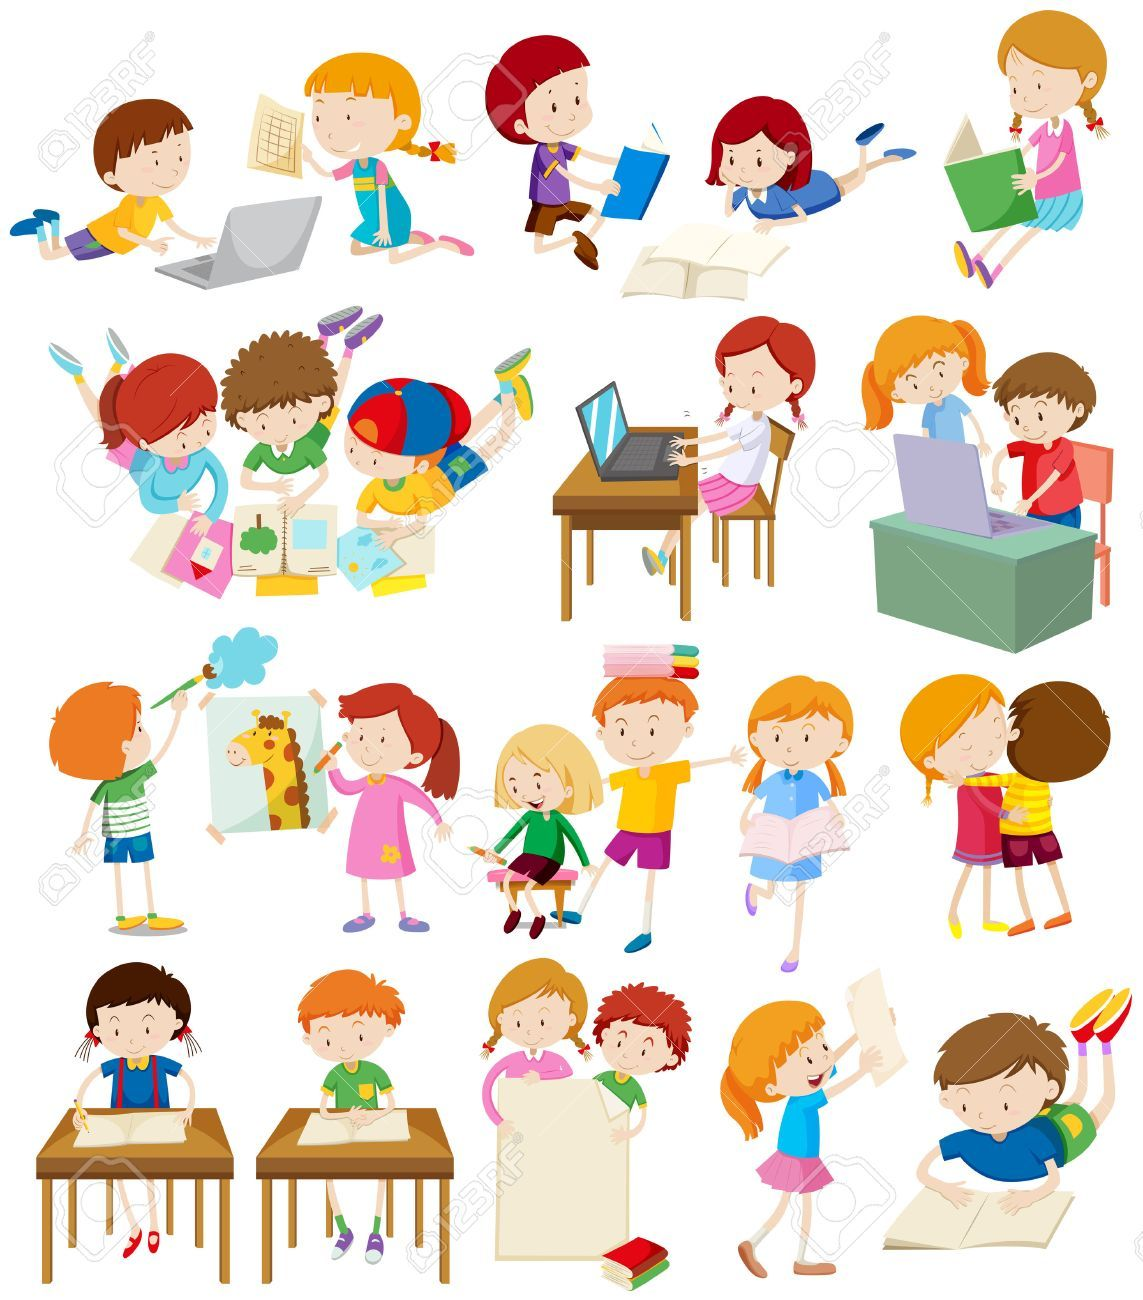 School activity clipart 1 » Clipart Portal graphic royalty free download